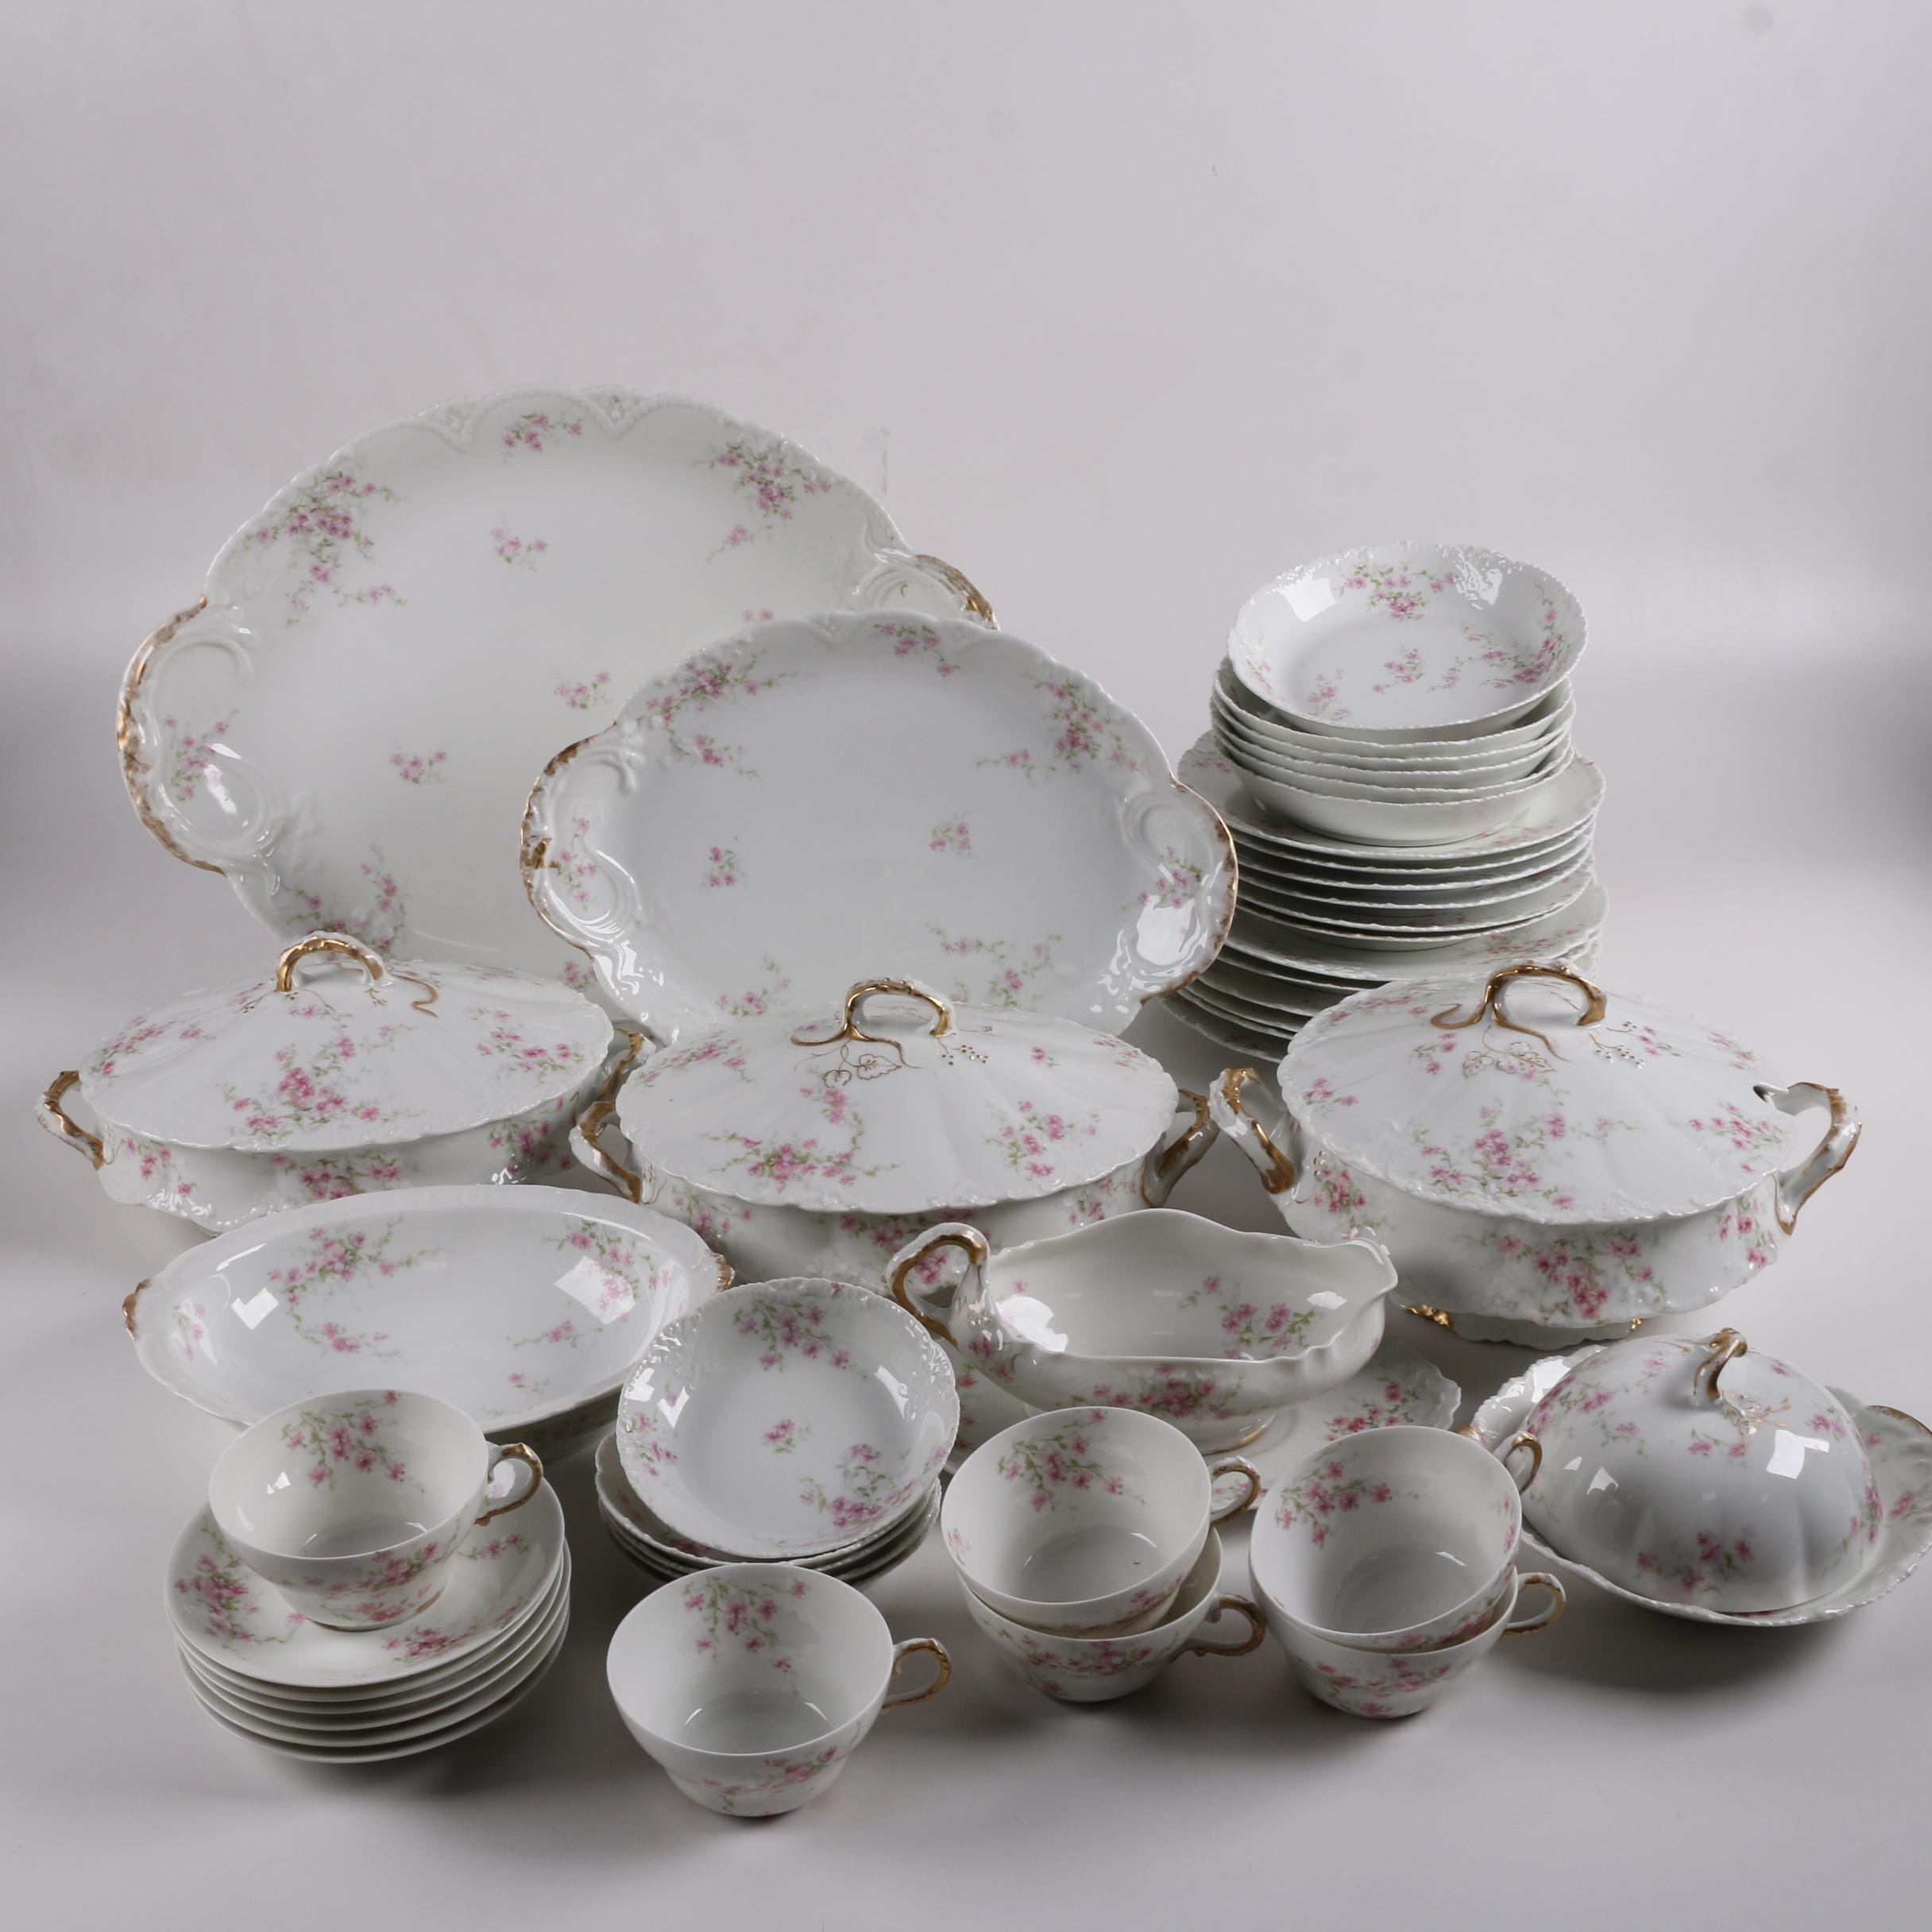 Antique Theodore Haviland Limoges Porcelain Dinnerware ca. 1895